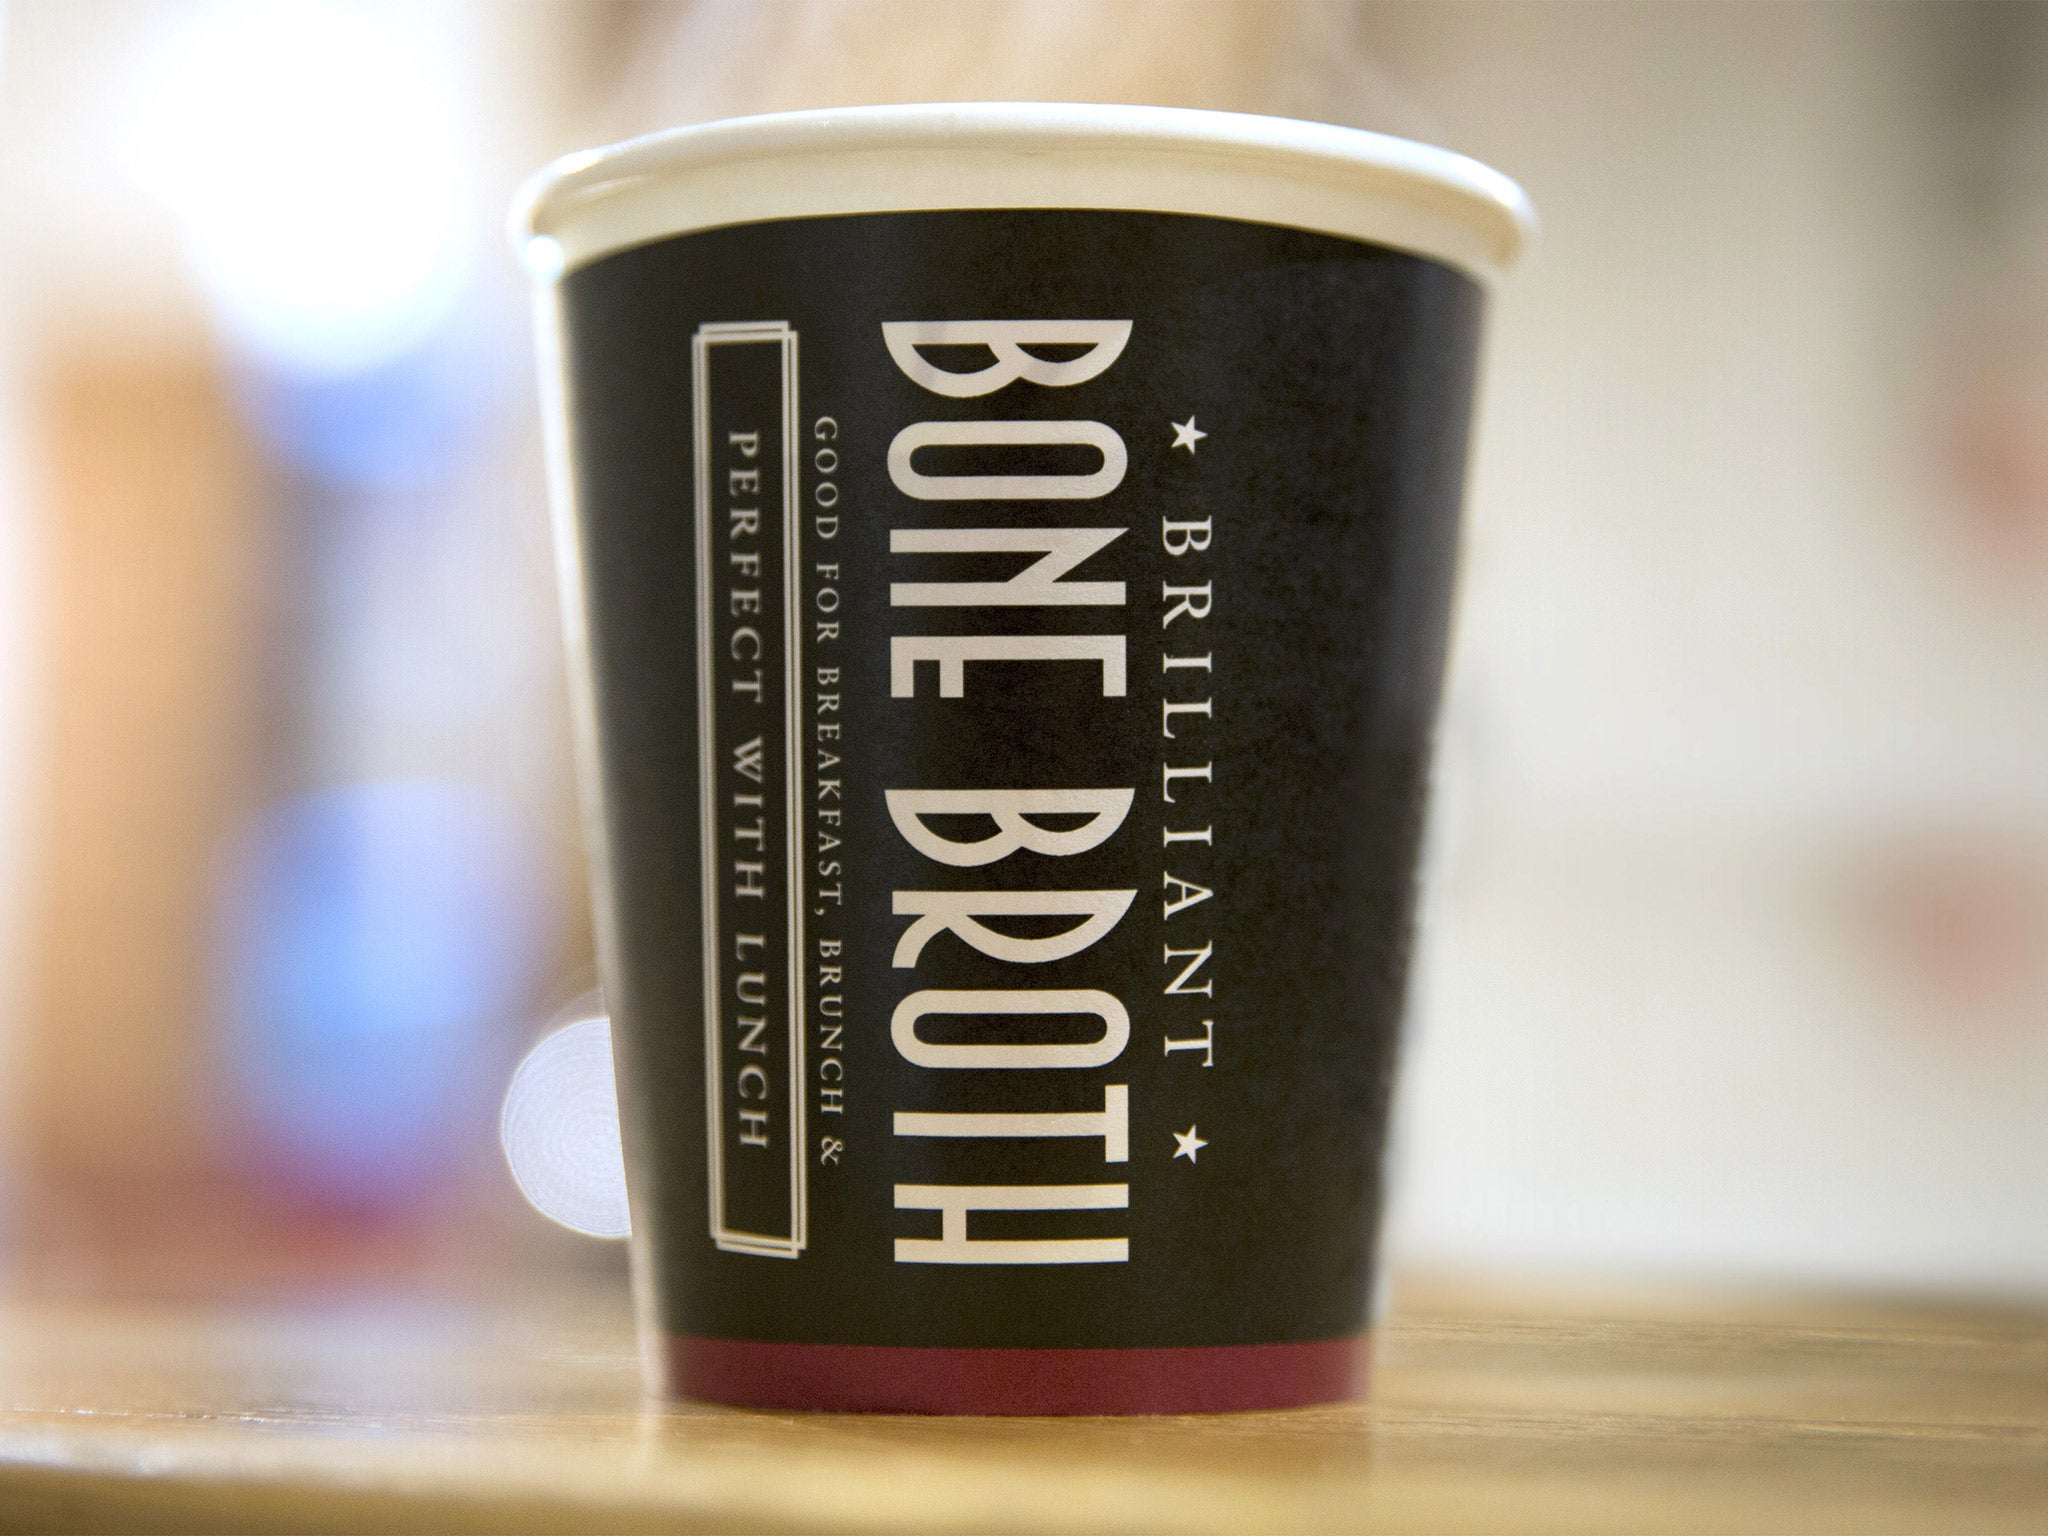 Bone broth is the latest foodie fad - but is it really just posh Bovril?